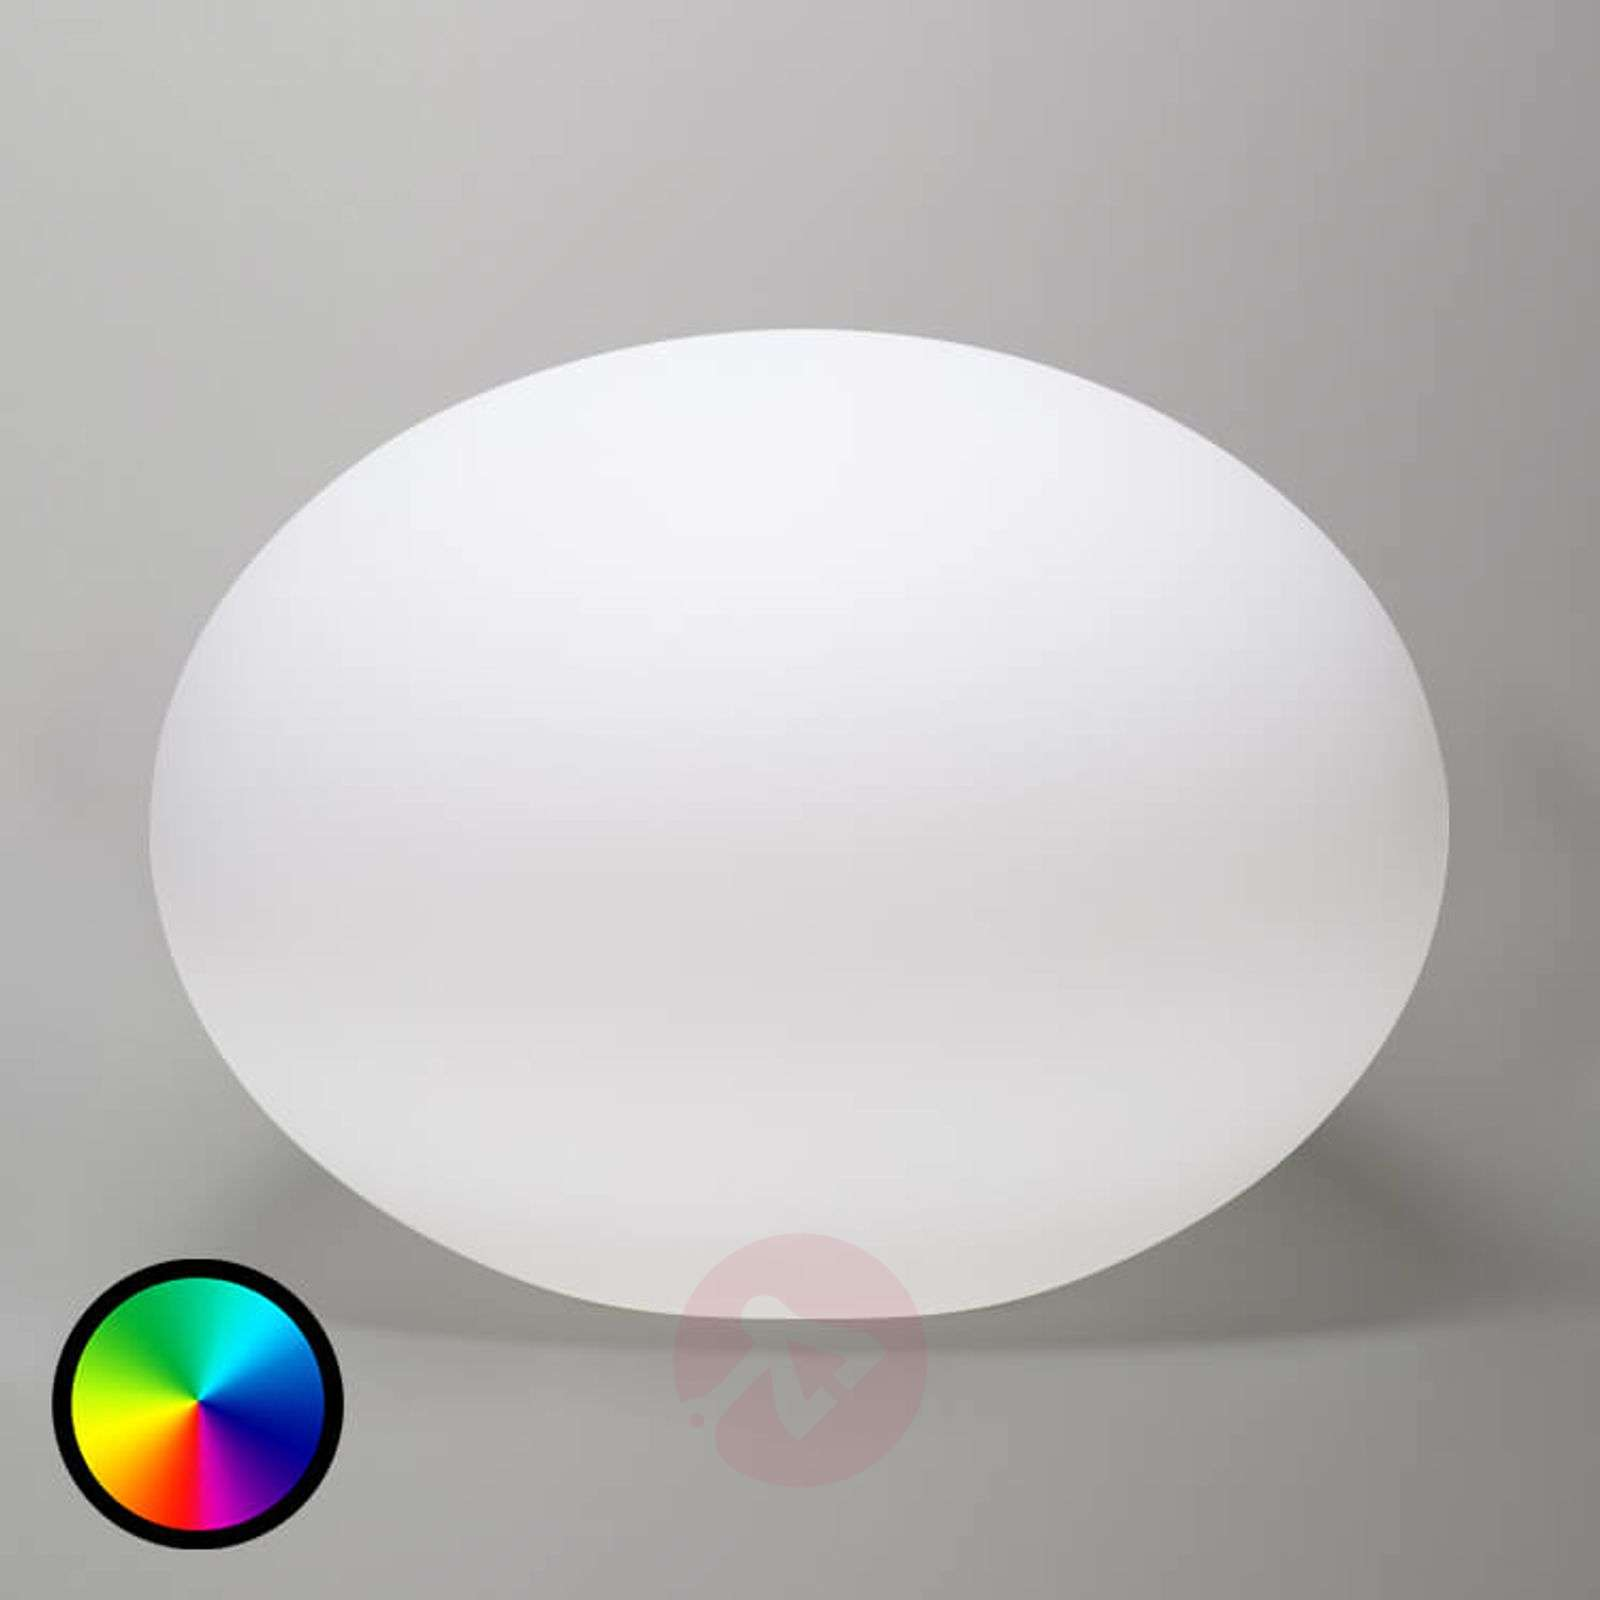 Flatball buoyant LED decorative light-8590012-01